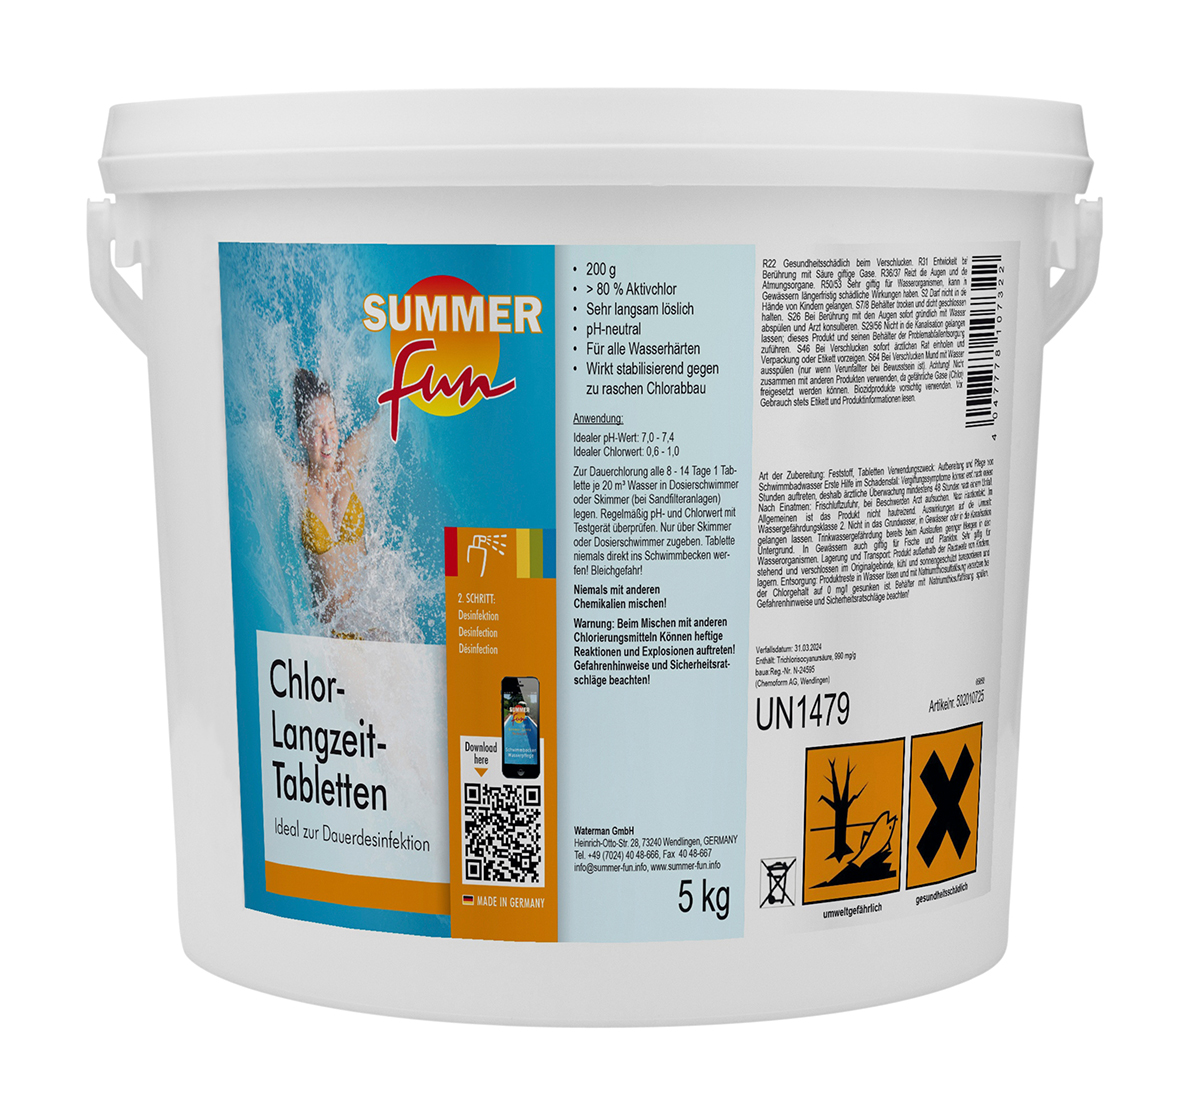 Summer Fun Chlor-Langzeit-Tabletten 200 g 5 kg